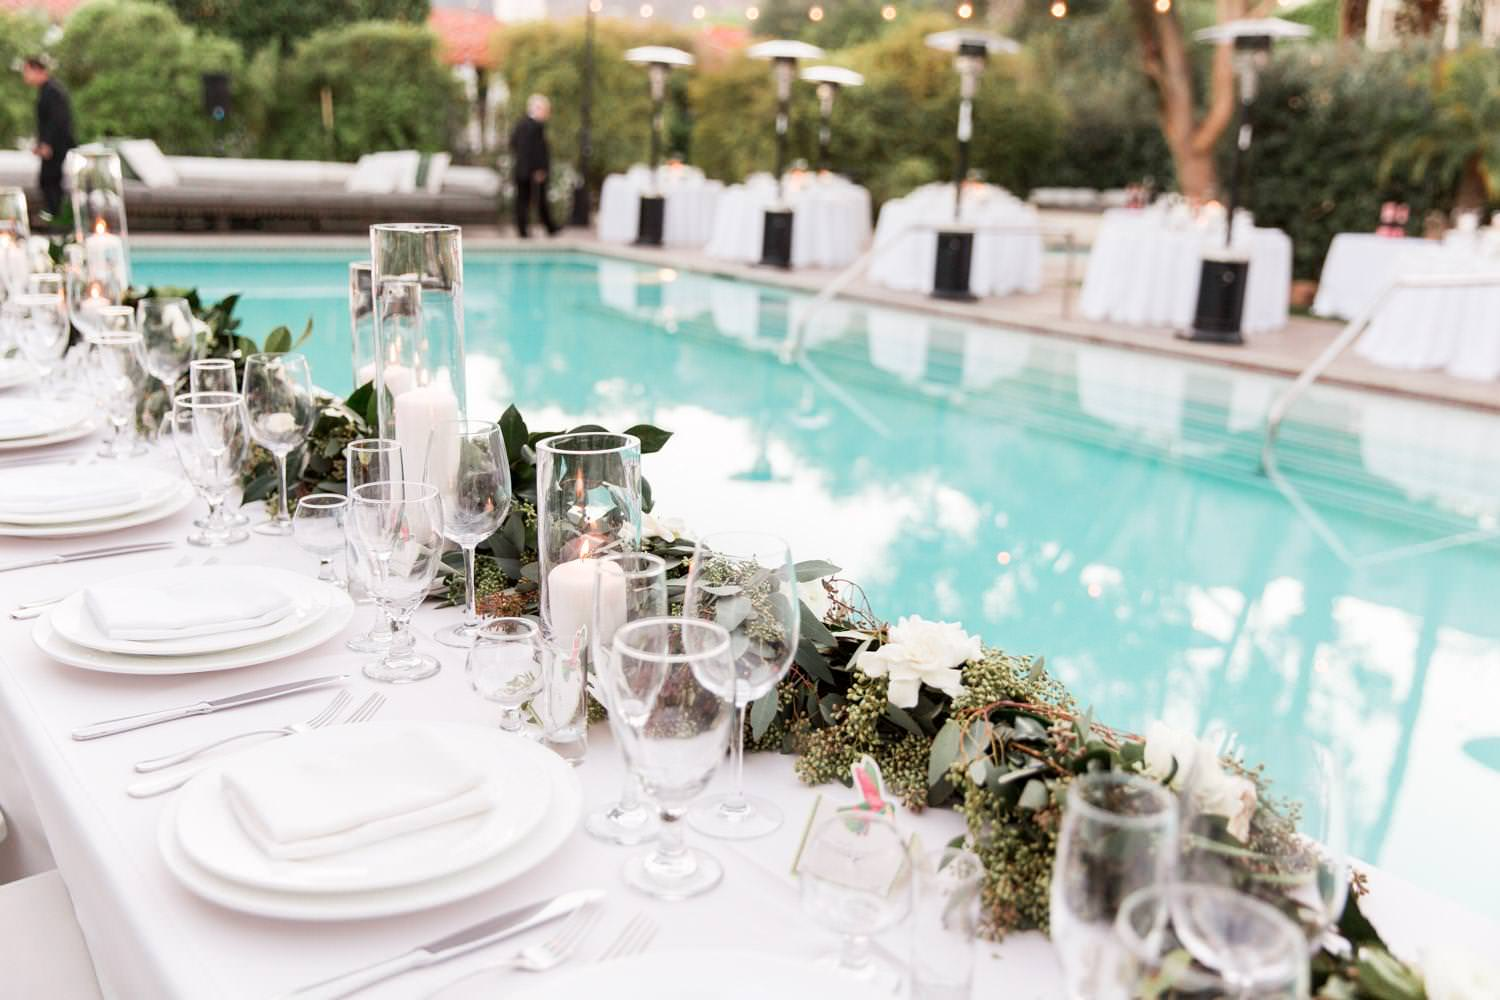 Colony Palms Hotel Wedding Palm Springs reception by the pool, Cavin Elizabeth Photography